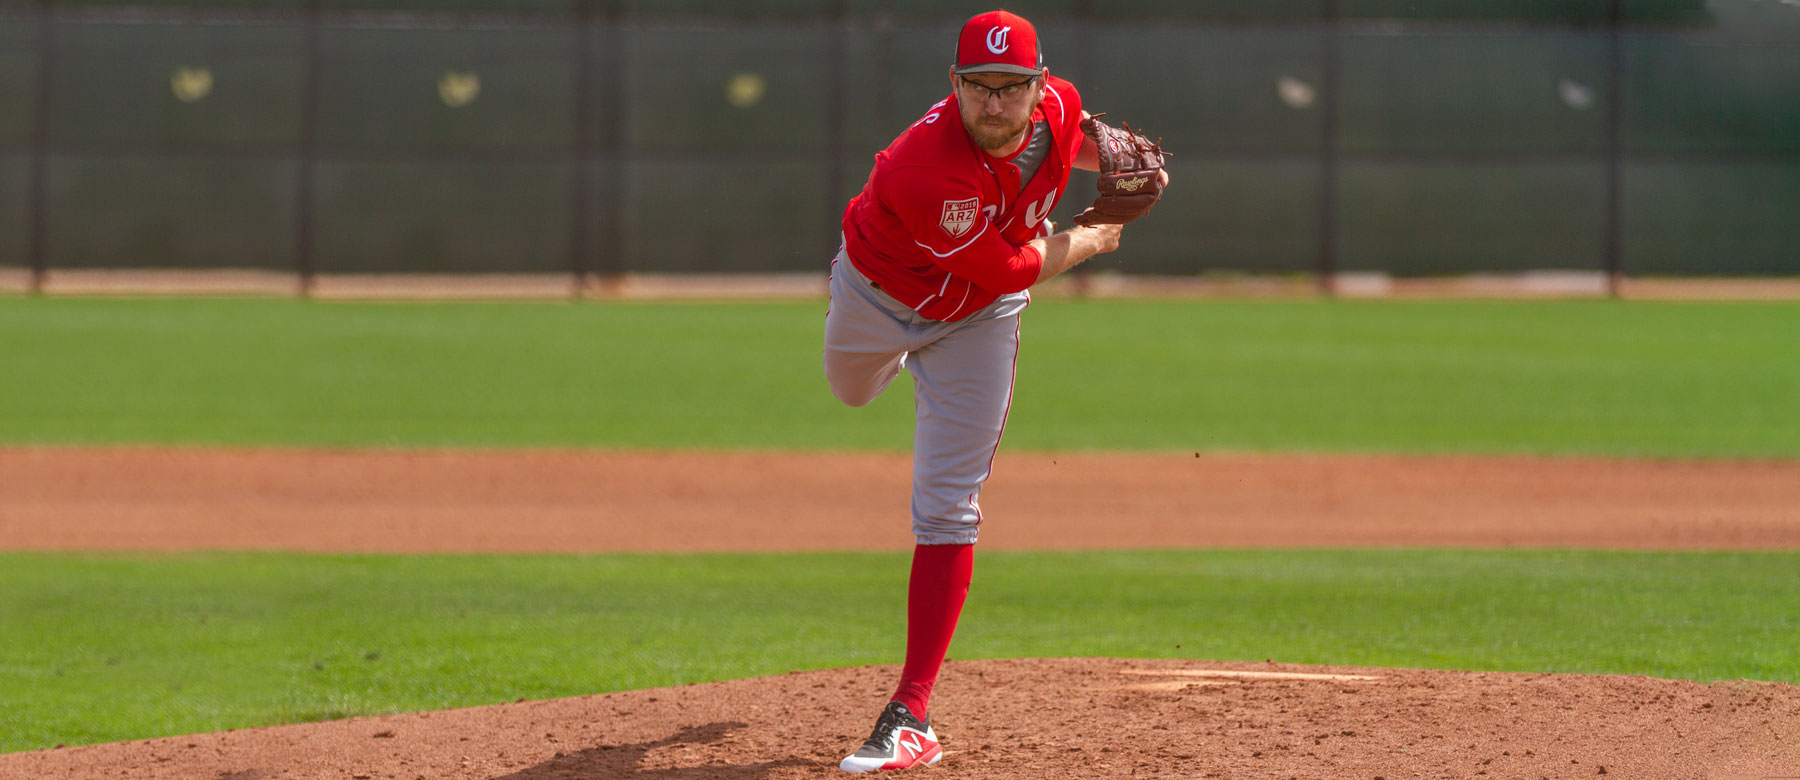 Most likely non-roster pitcher to make the Reds this spring   redsminorleagues.com